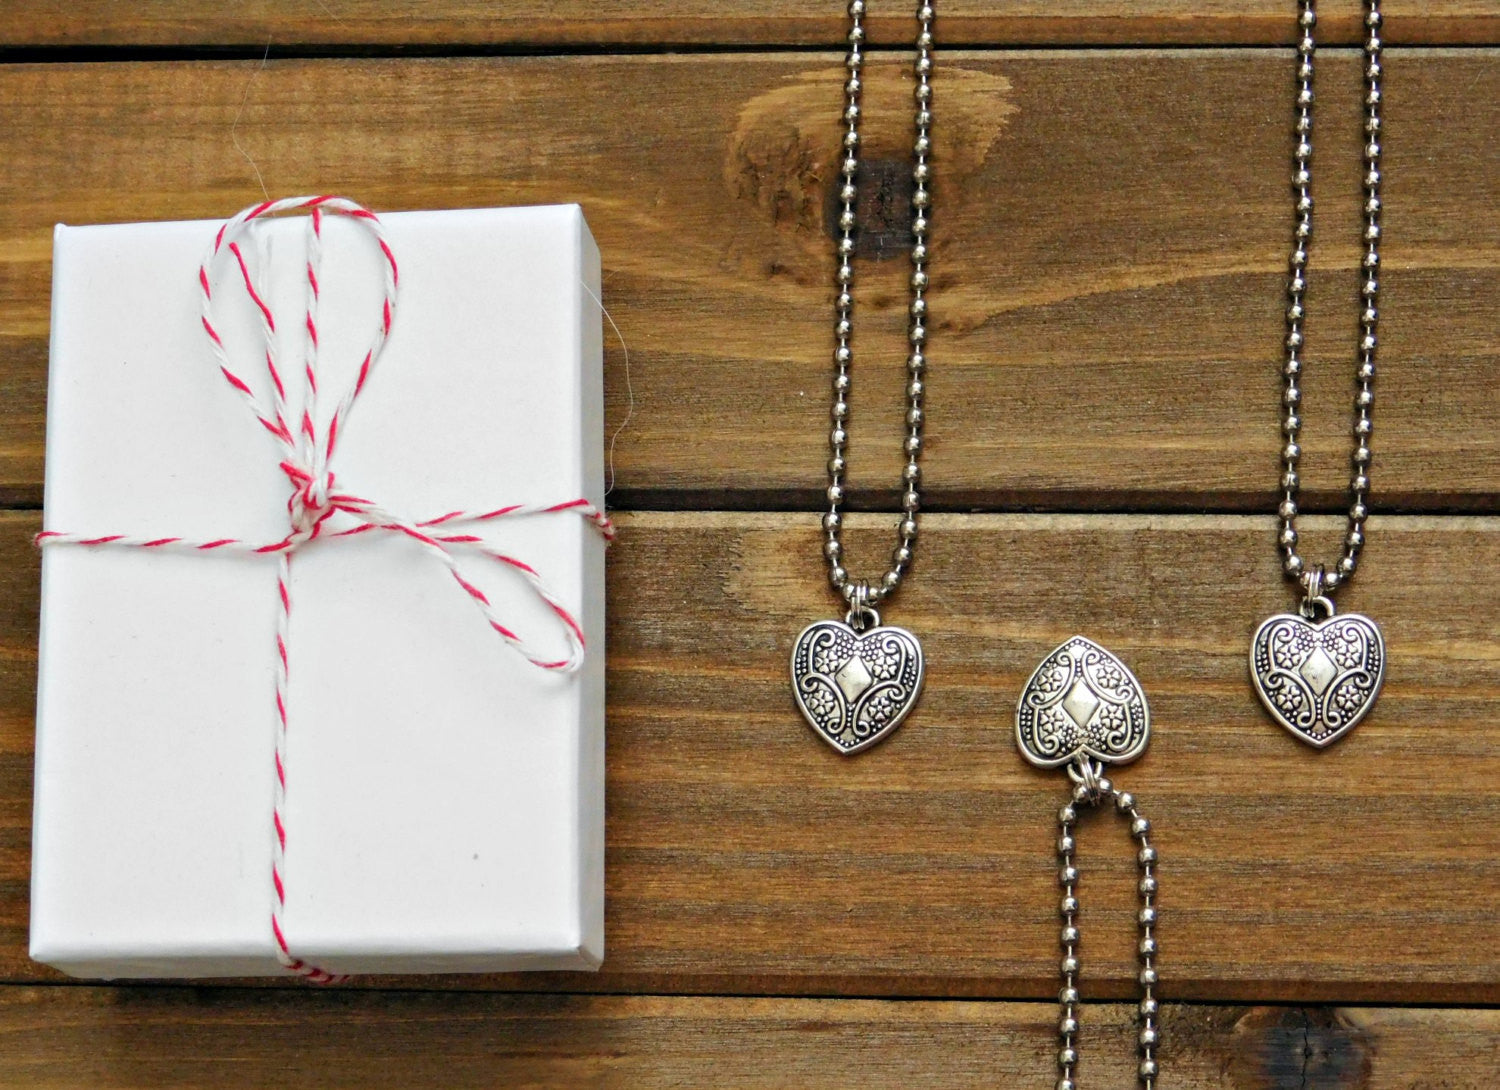 Heart Charm Necklace Dainty Pendant Silver Tone Custom Length Womens Birthday Friendship Girls